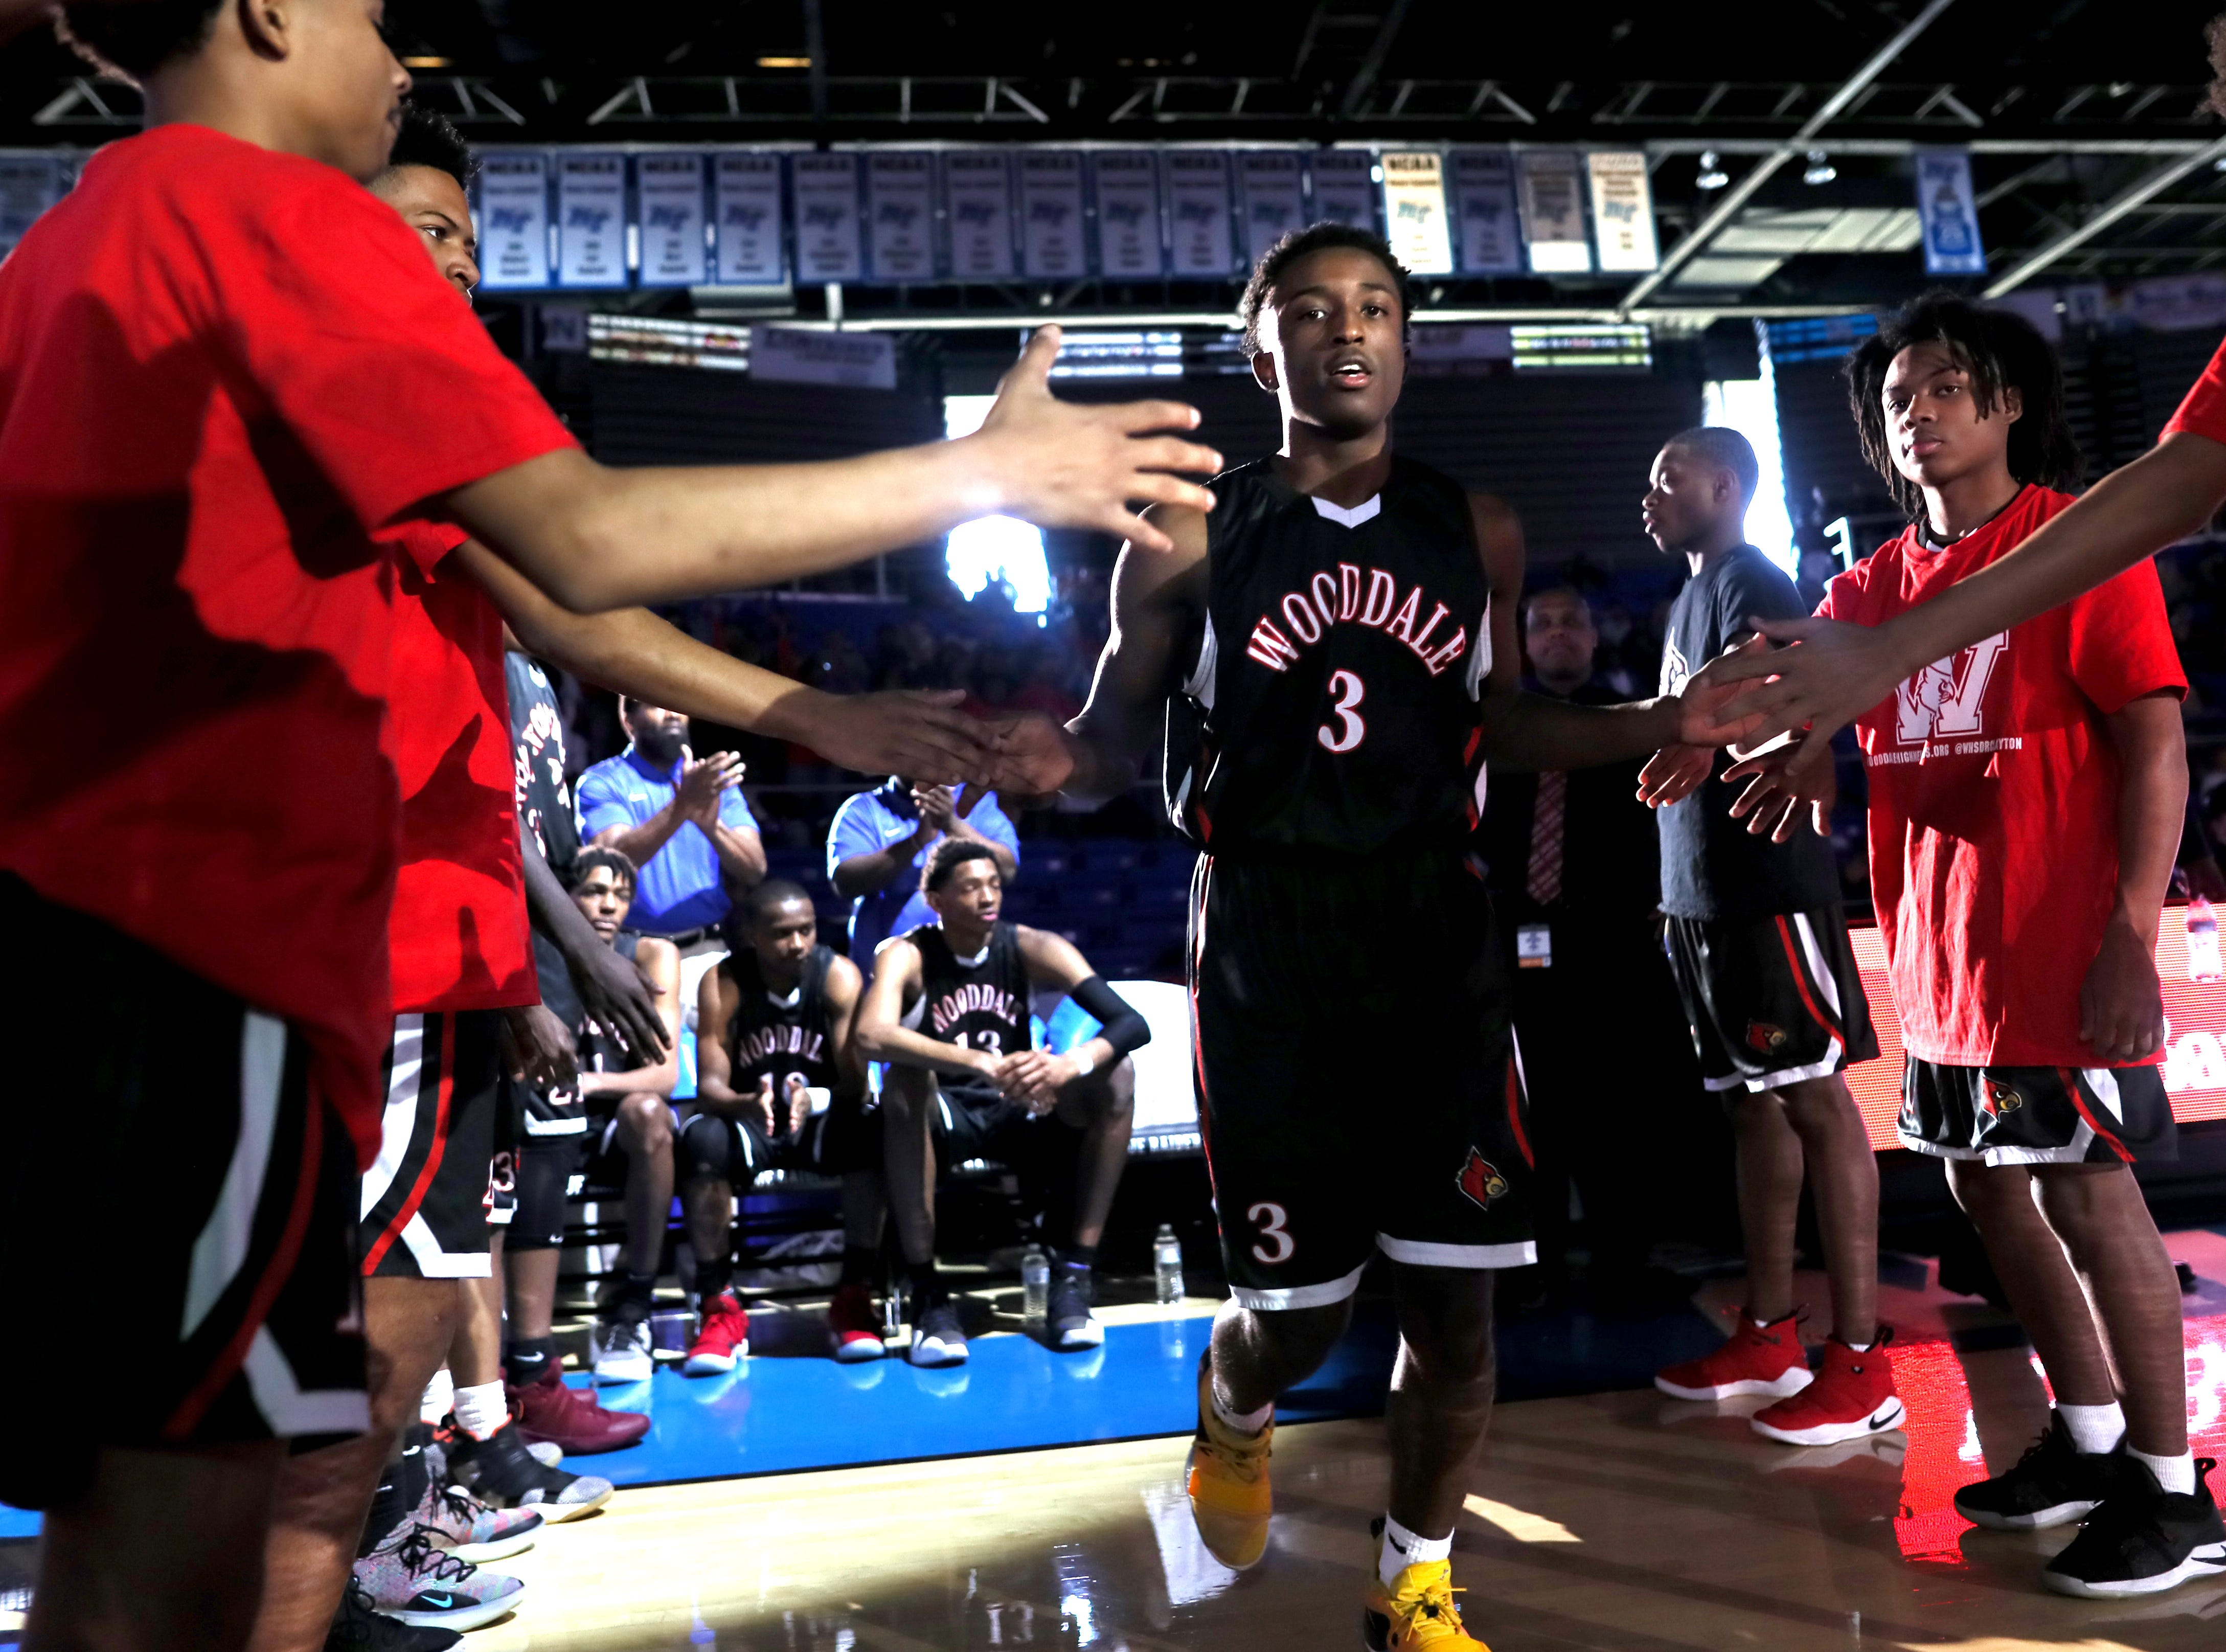 Wooddale's Alvin Miles is introduced before their game against Fulton during the Class AA boys basketball state championship game at the Murphy Center in Murfreesboro, Tenn. on Saturday, March 16, 2019.